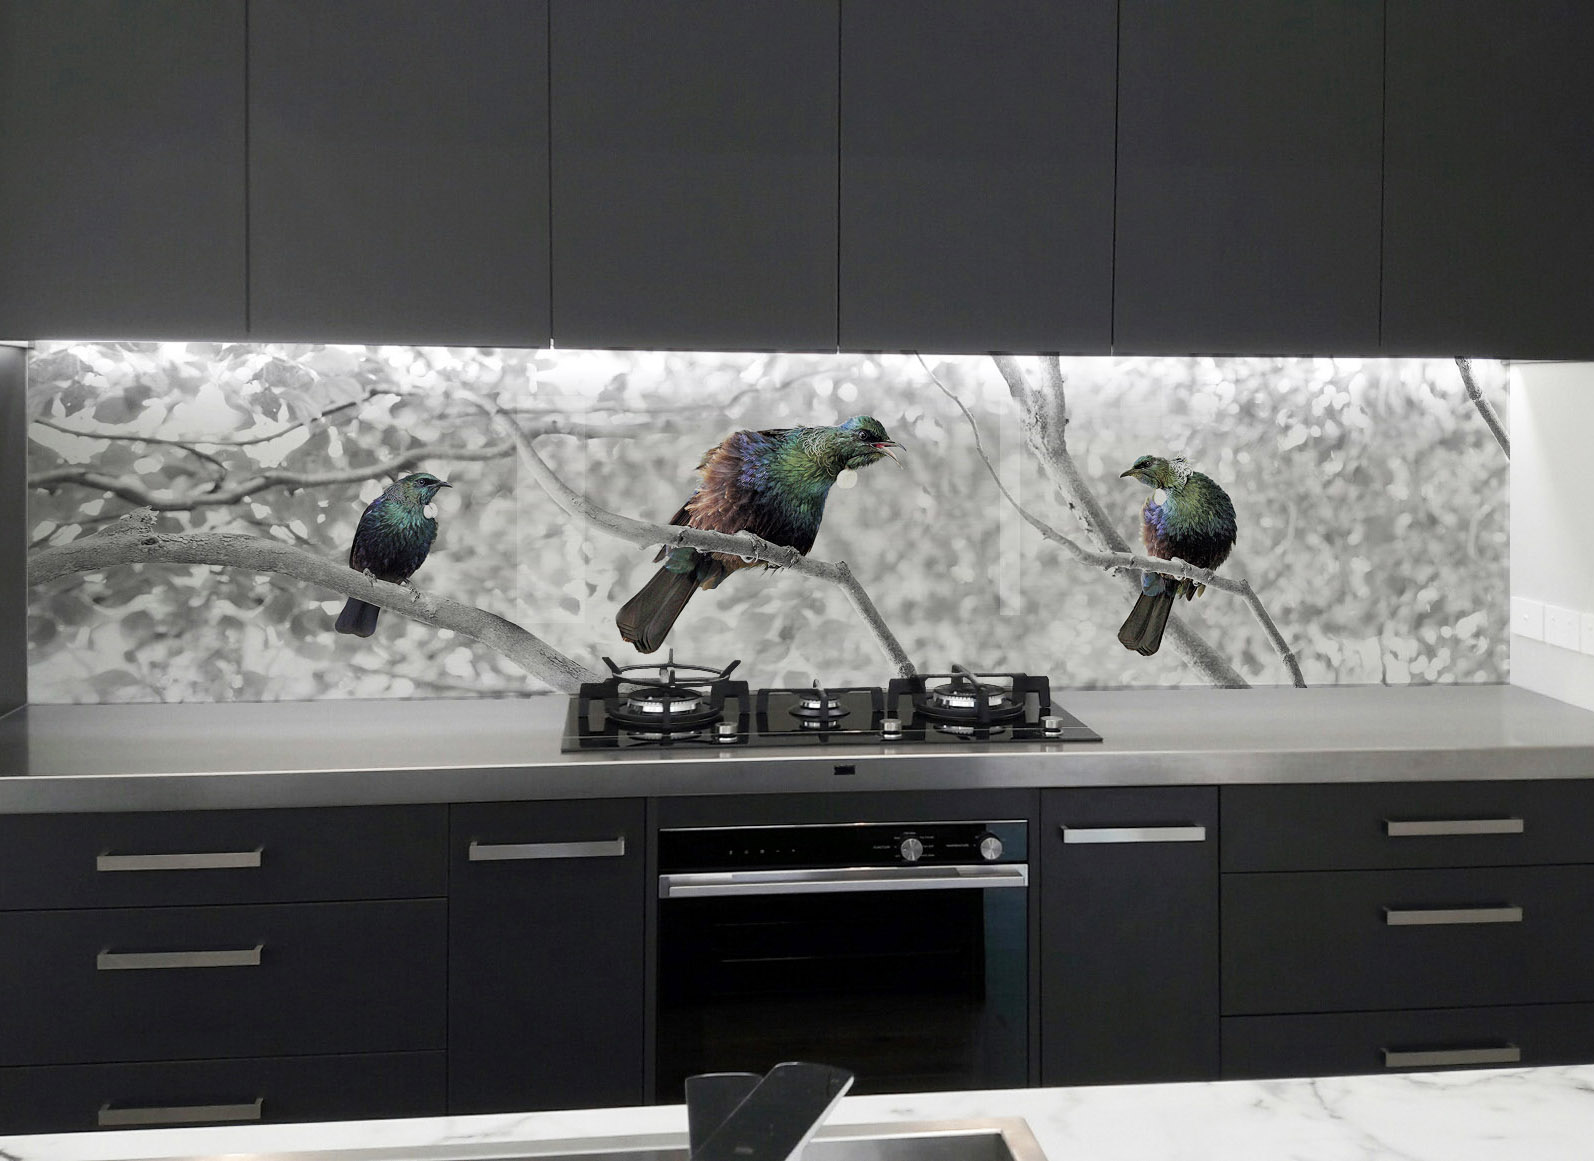 Dark cabinetry ? - Choose an image with lots of light tones as a dark image will look too dark in the overall space and install overhead recessed cabinetry lights or an LED strip light to illuminate the splashback.